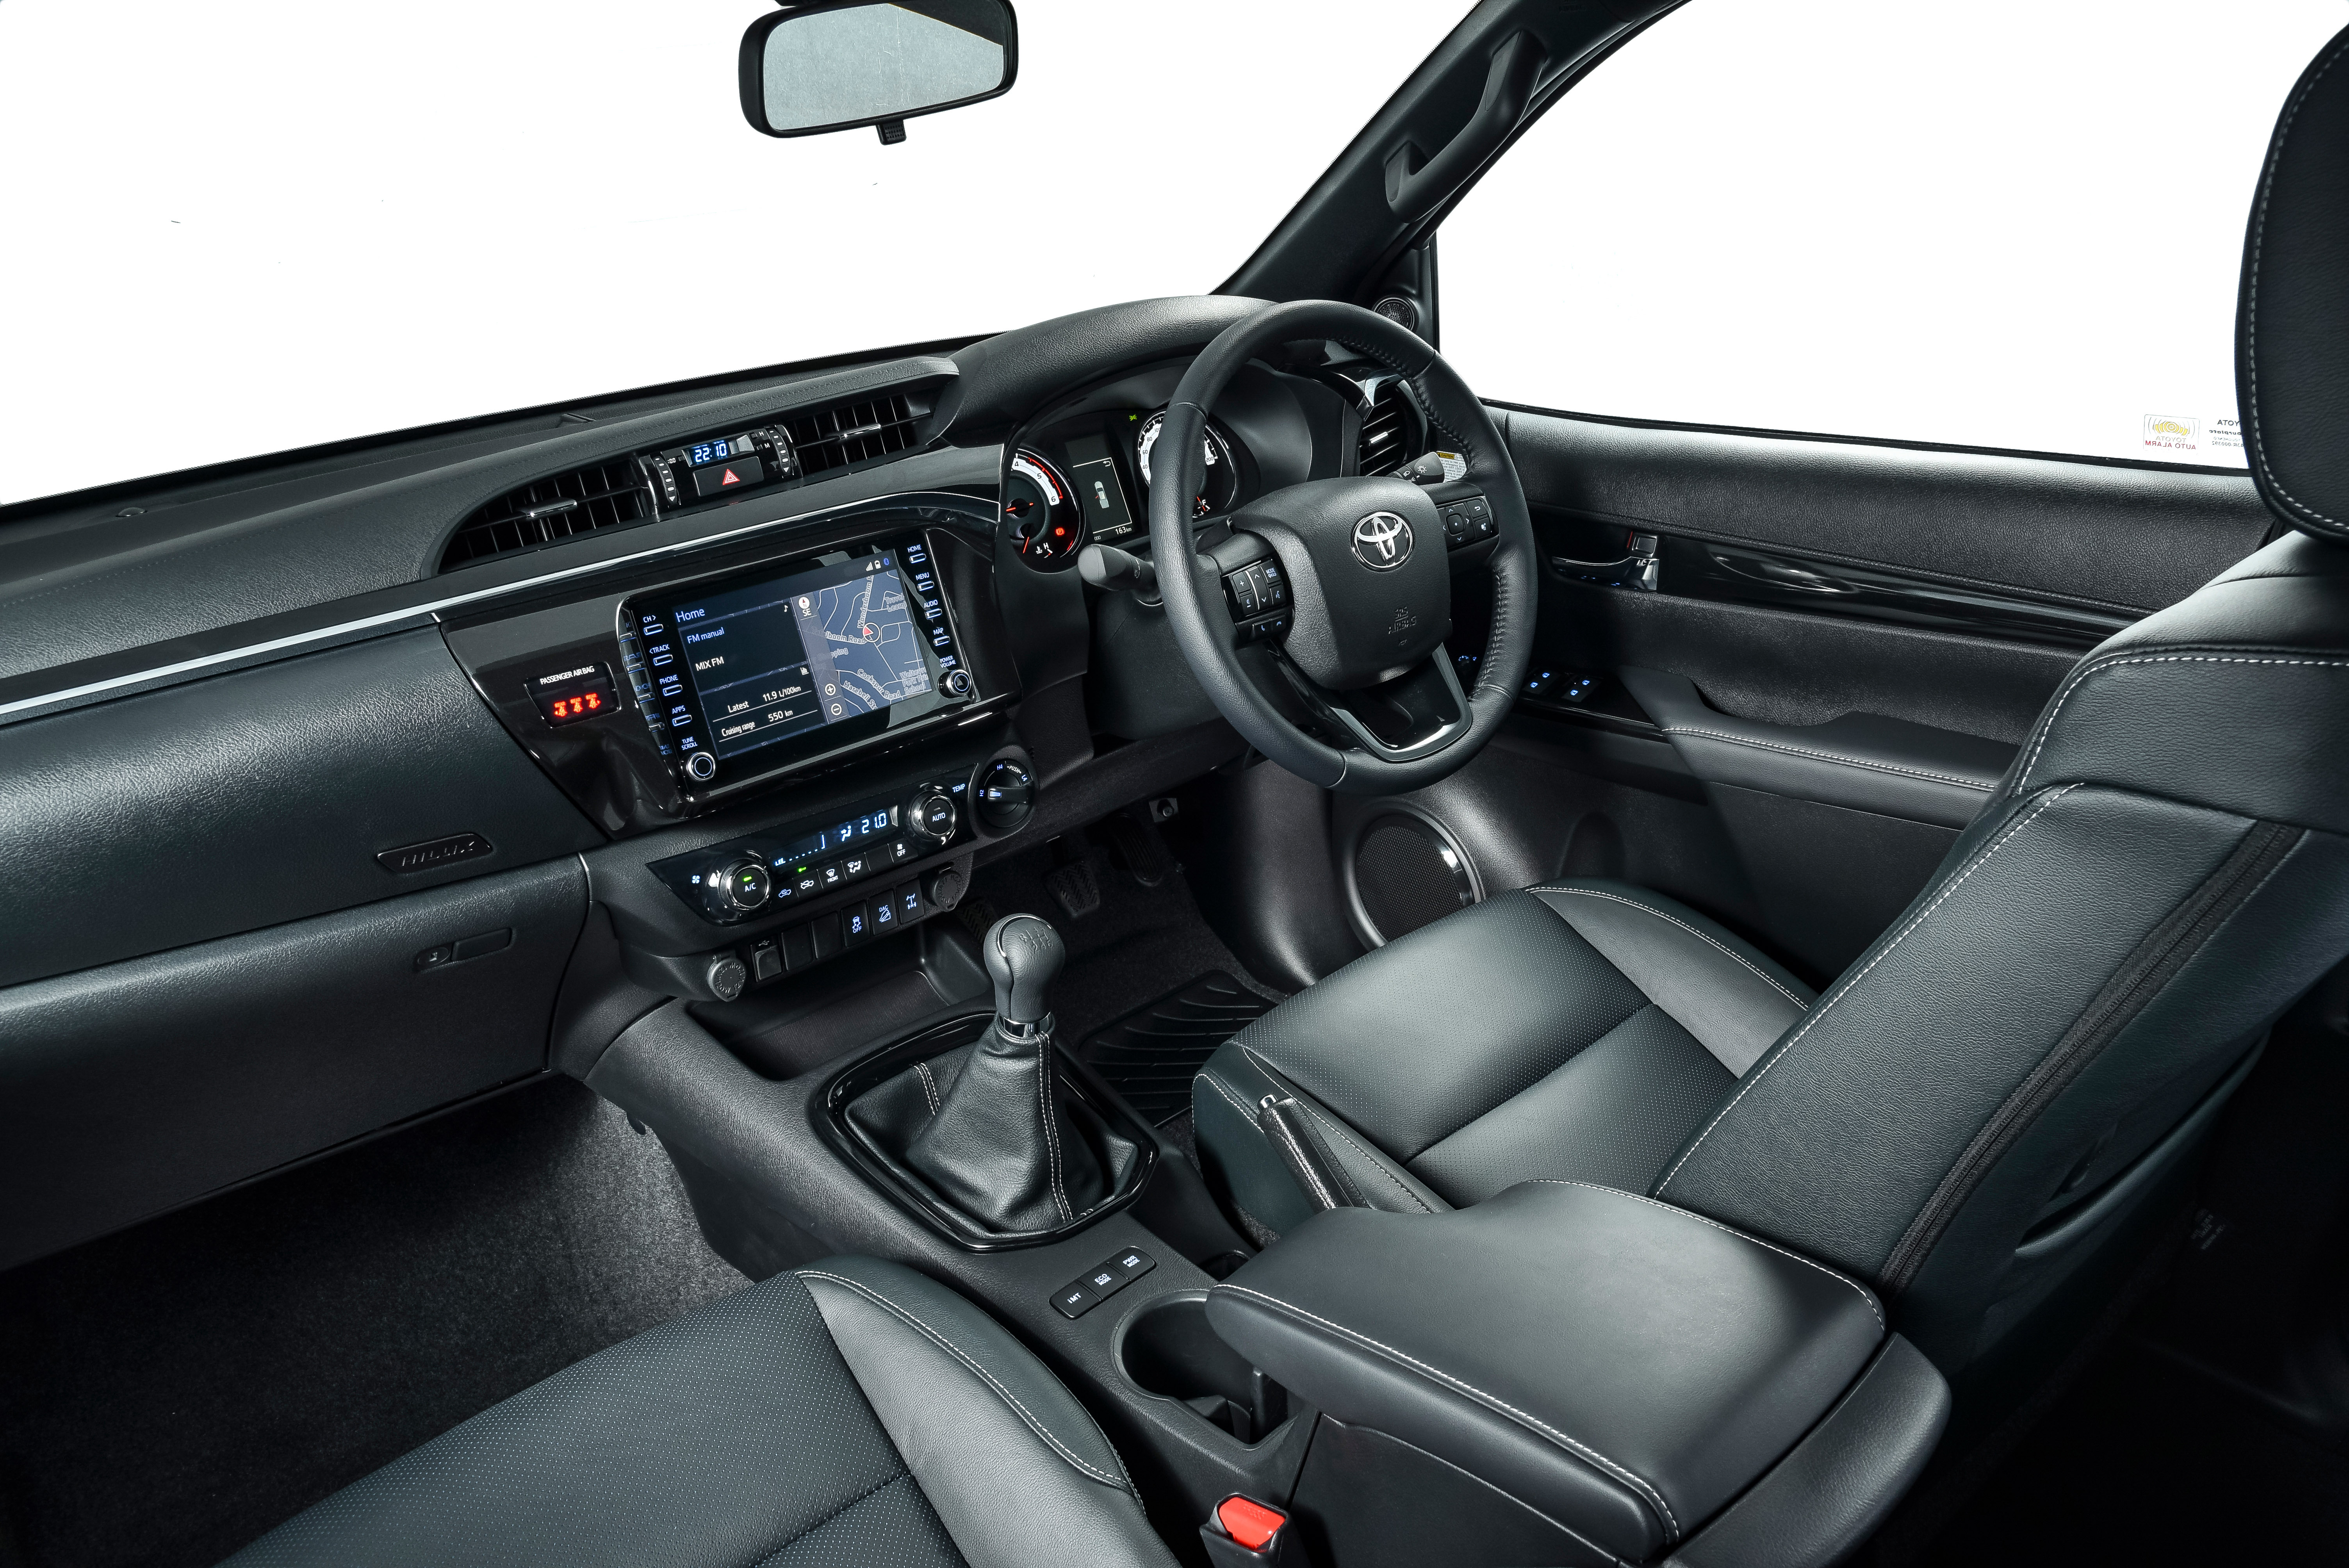 96 The Best The Toyota Legend 50 2019 New Interior Redesign And Concept